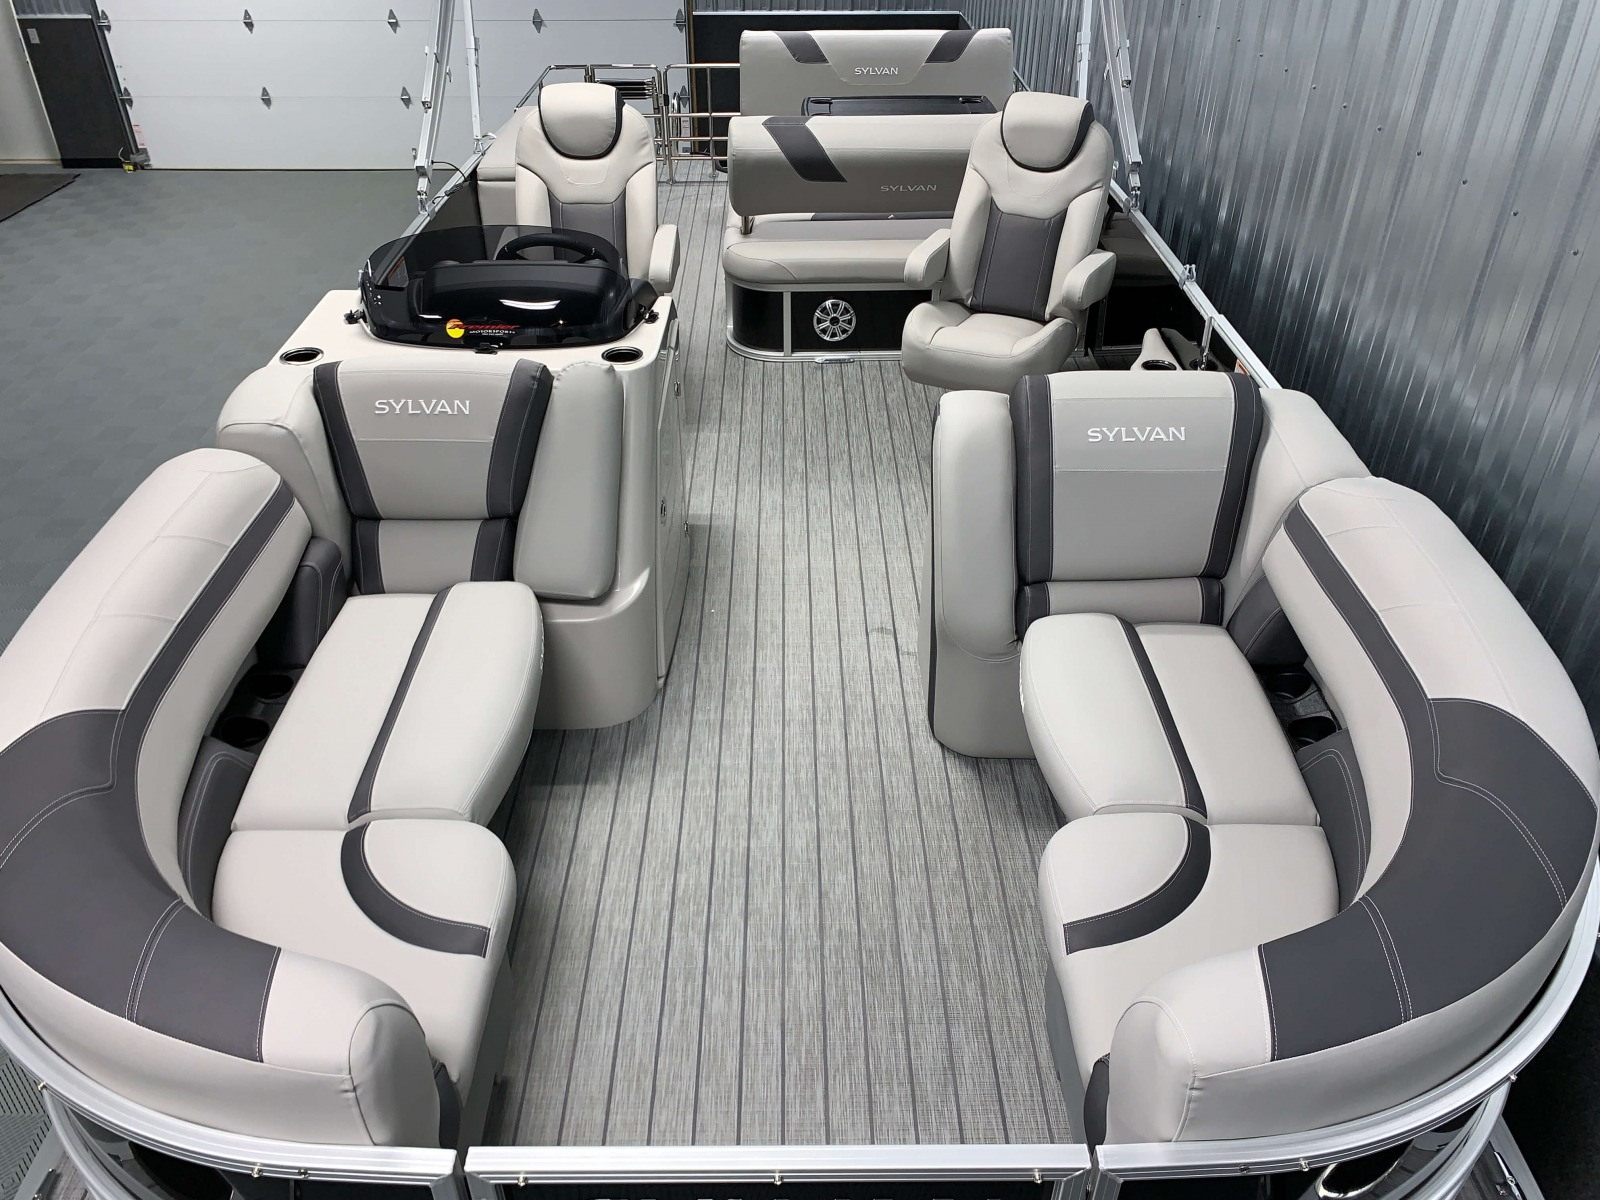 Interior Layout of the 2021 Sylvan L3 DLZ Pontoon Boat